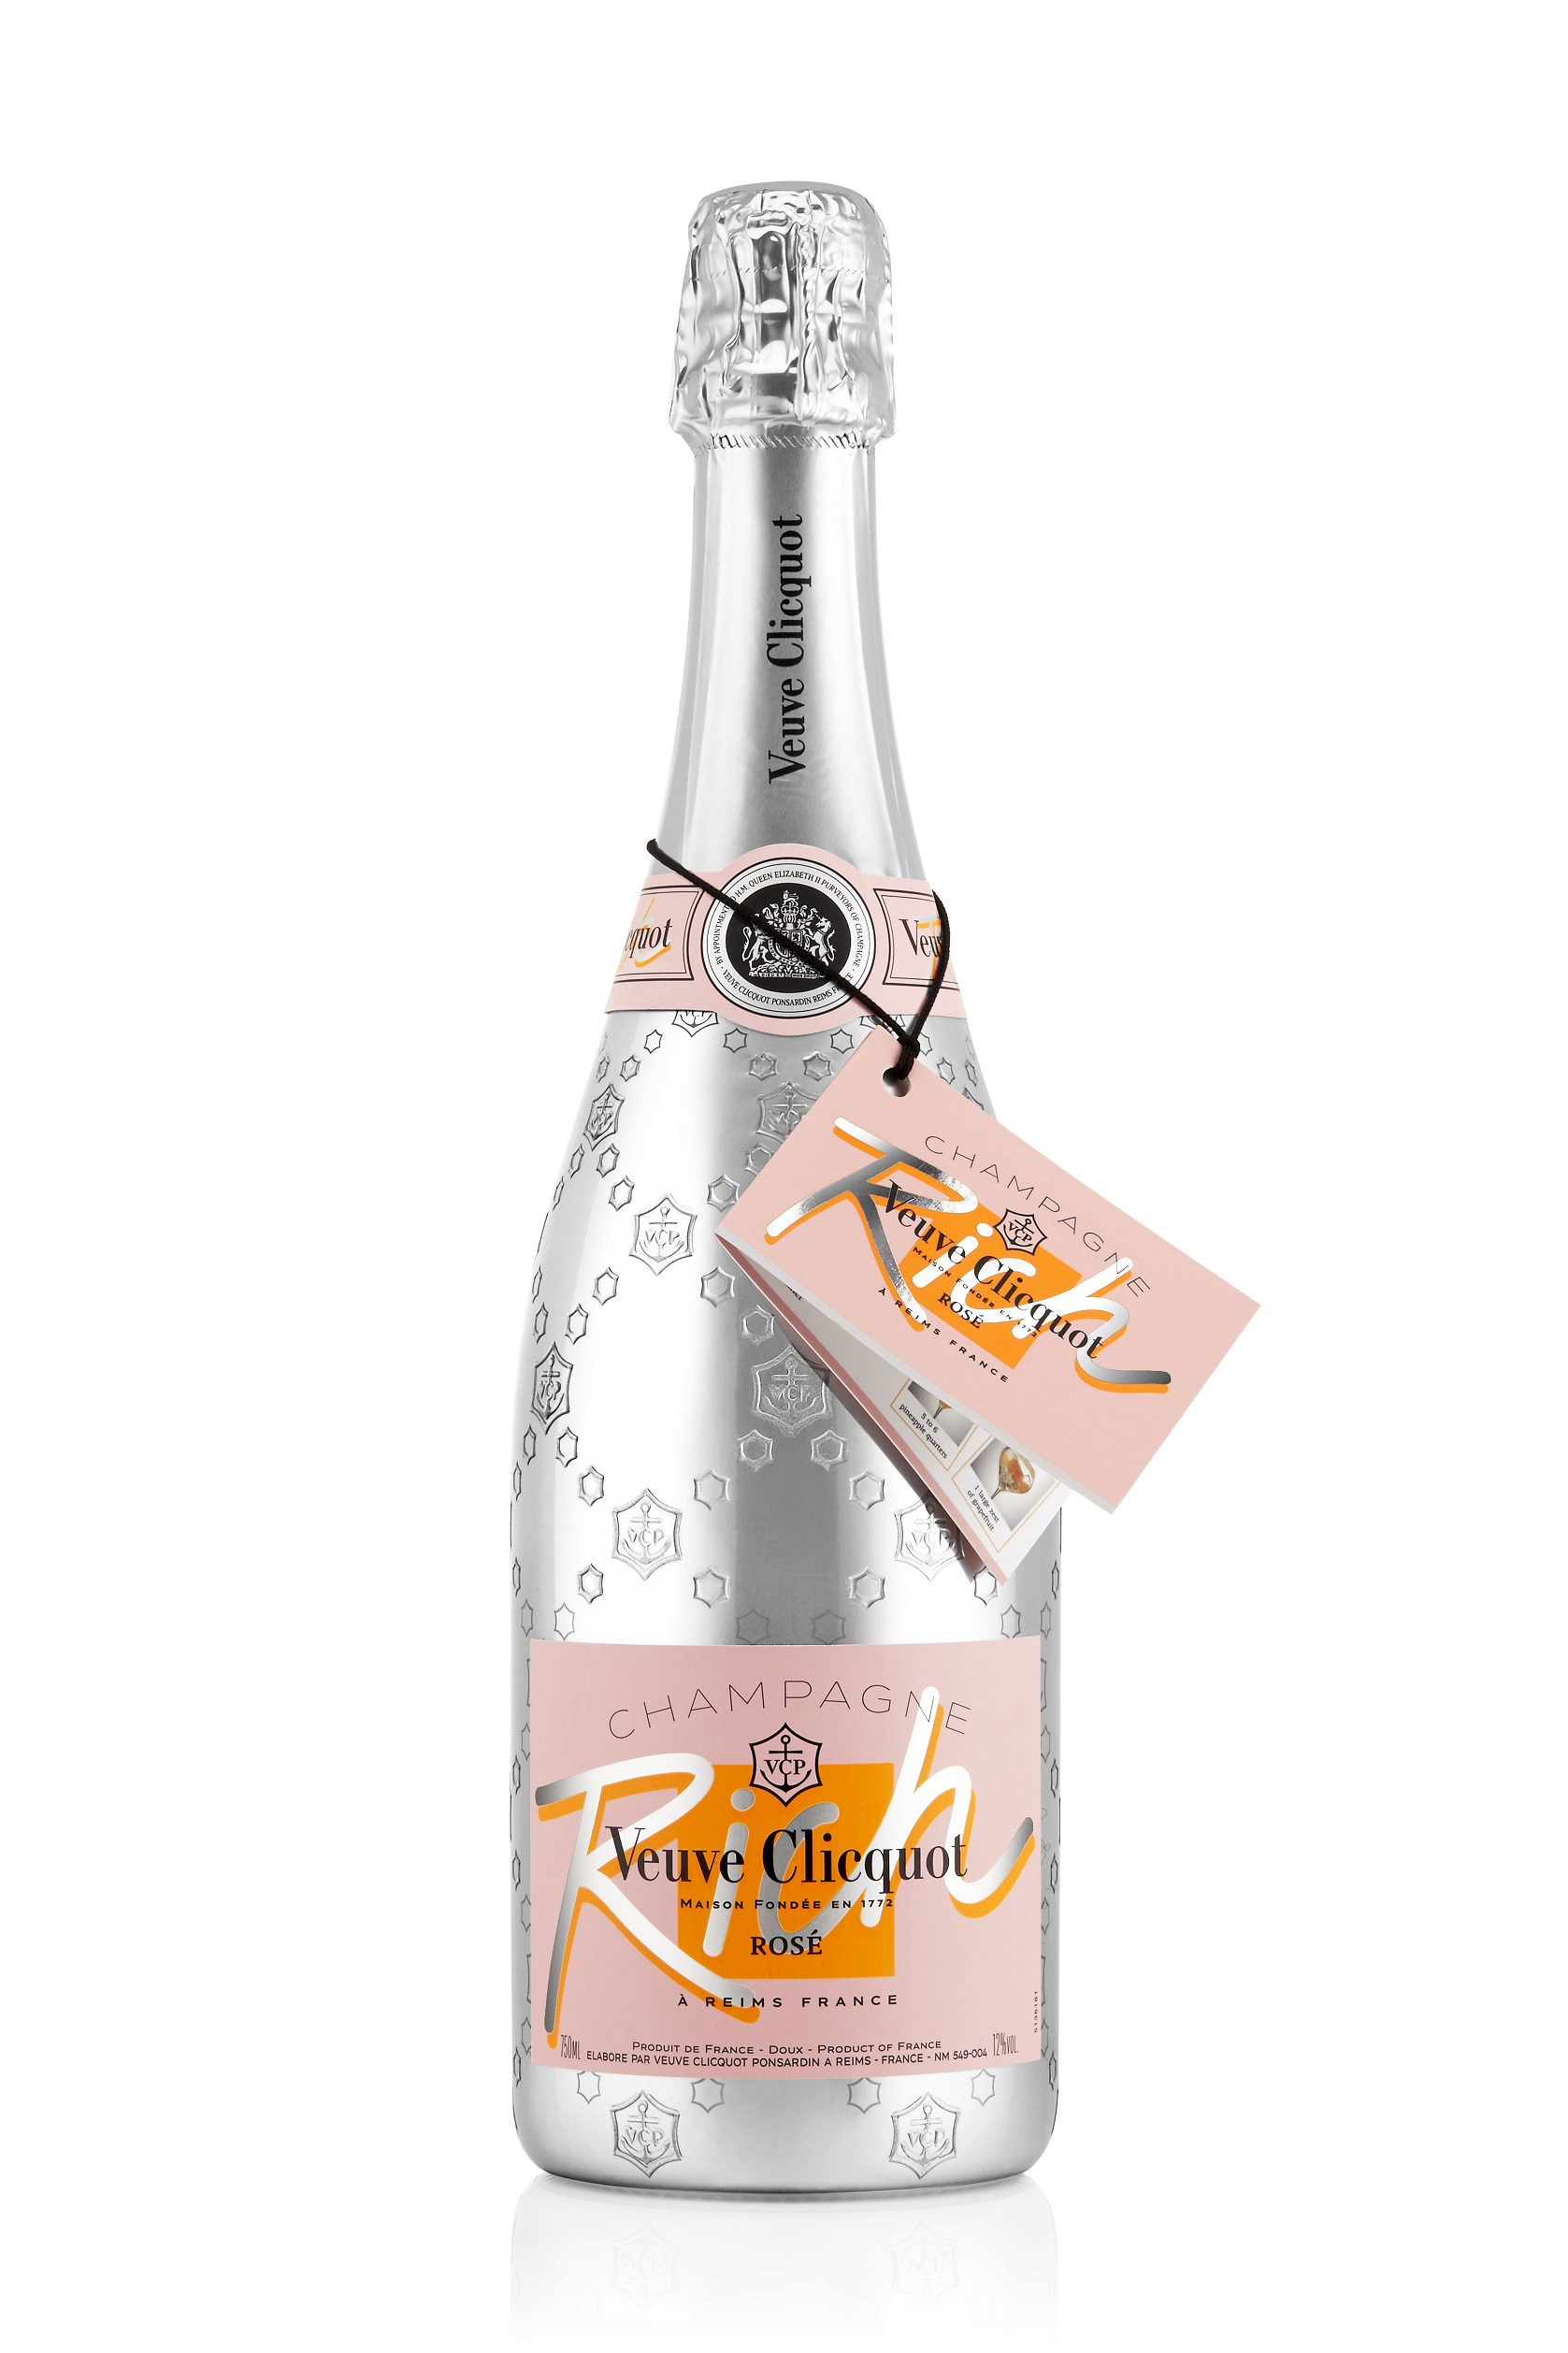 Veuve Clicquot Rich 2